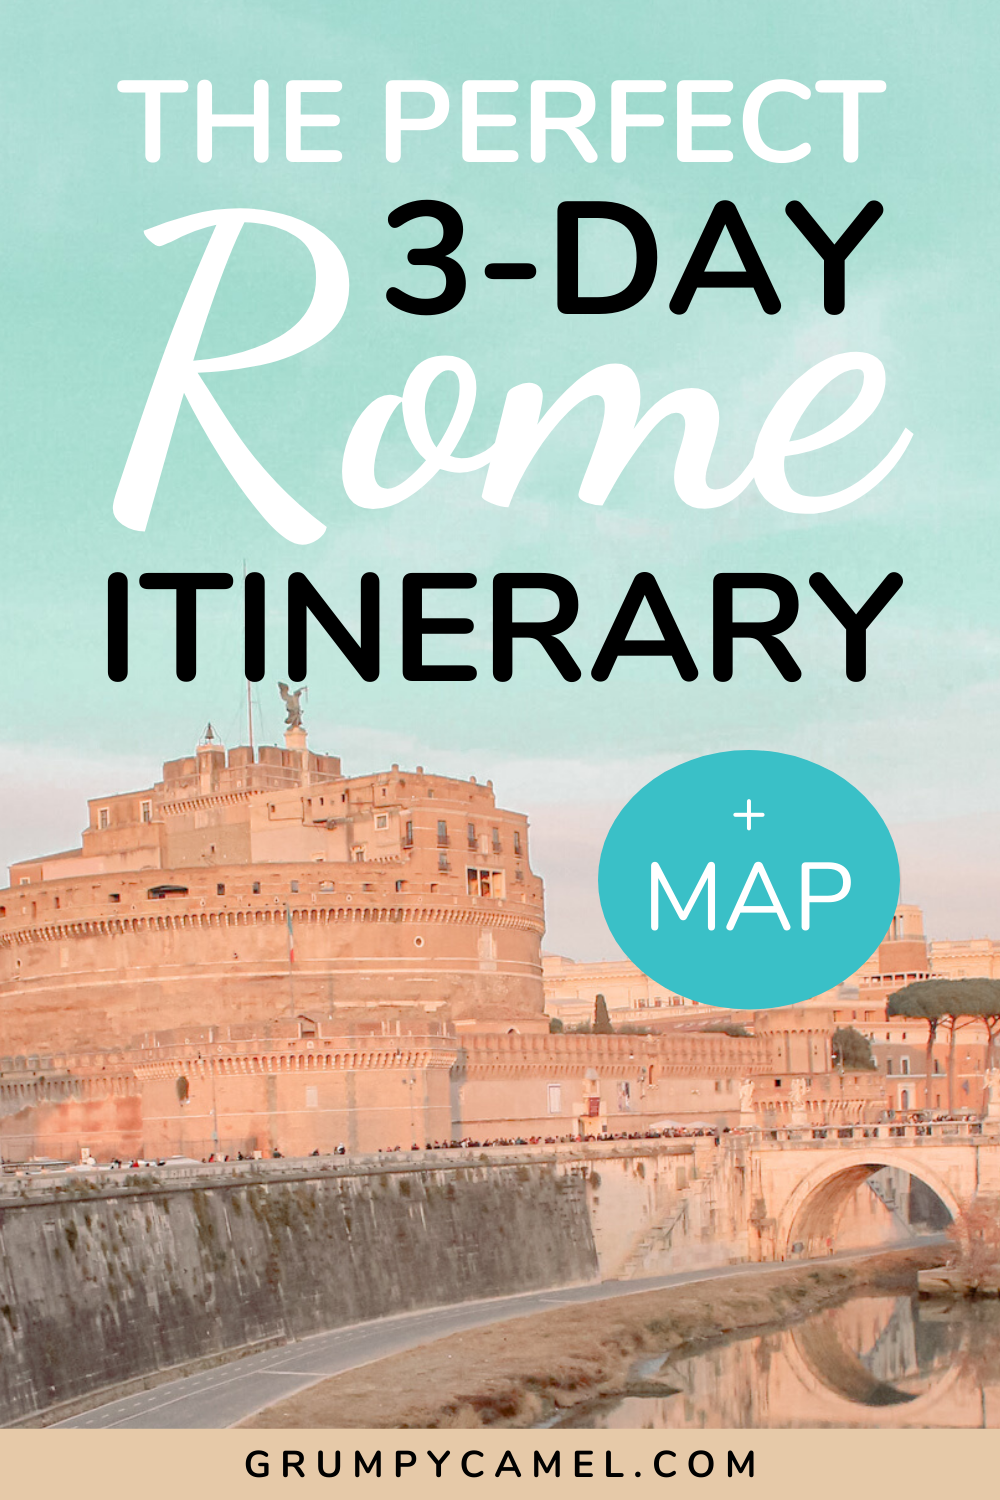 3 Days in Rome itinerary